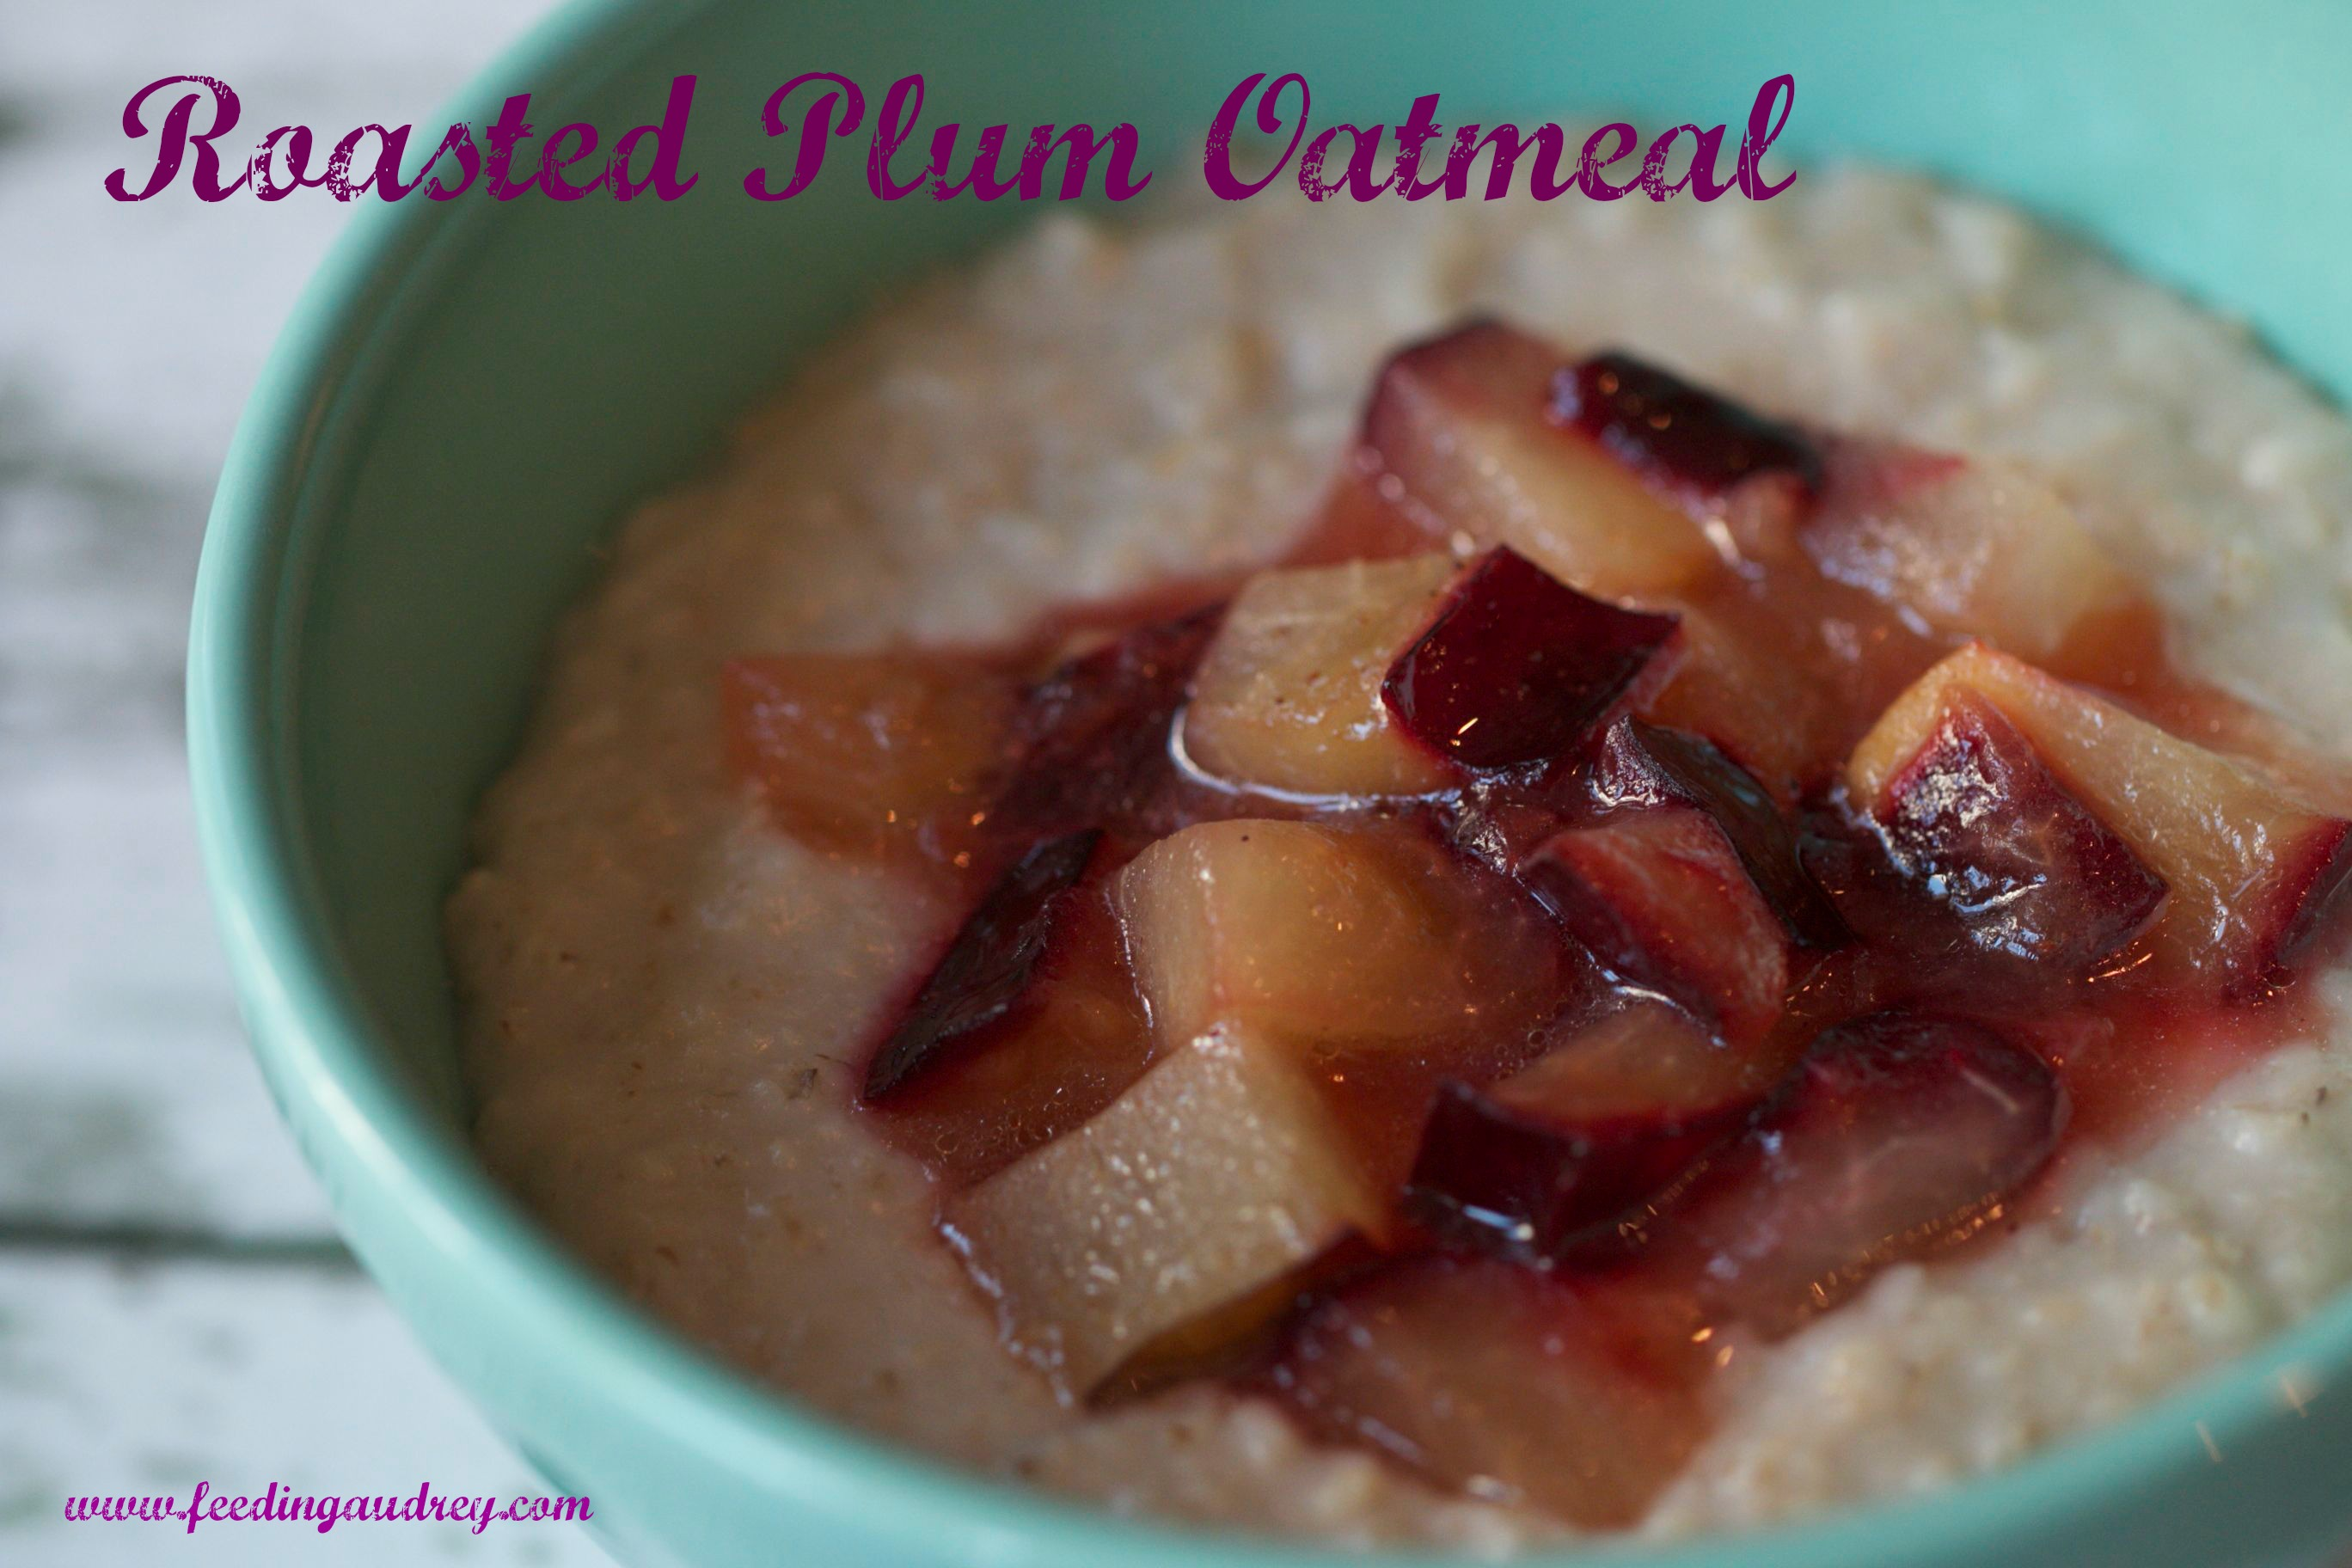 Roasted Plum Oatmeal www.feedingaudrey.com